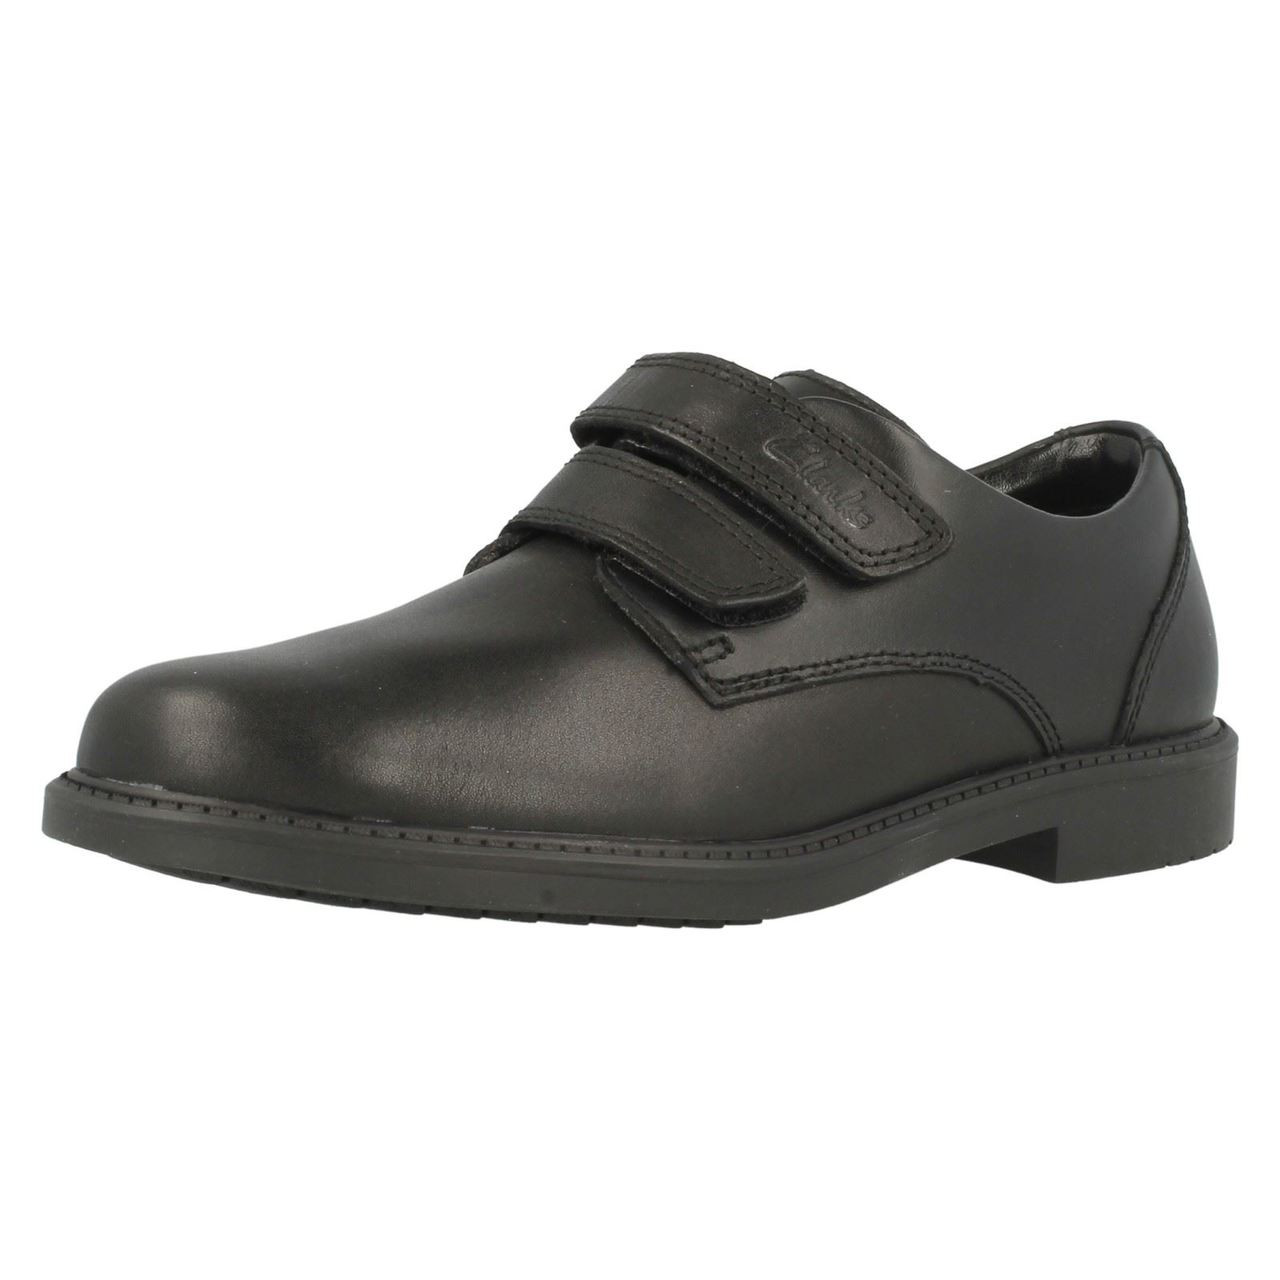 Clarks Boys School Shoes /'Deon Style/'